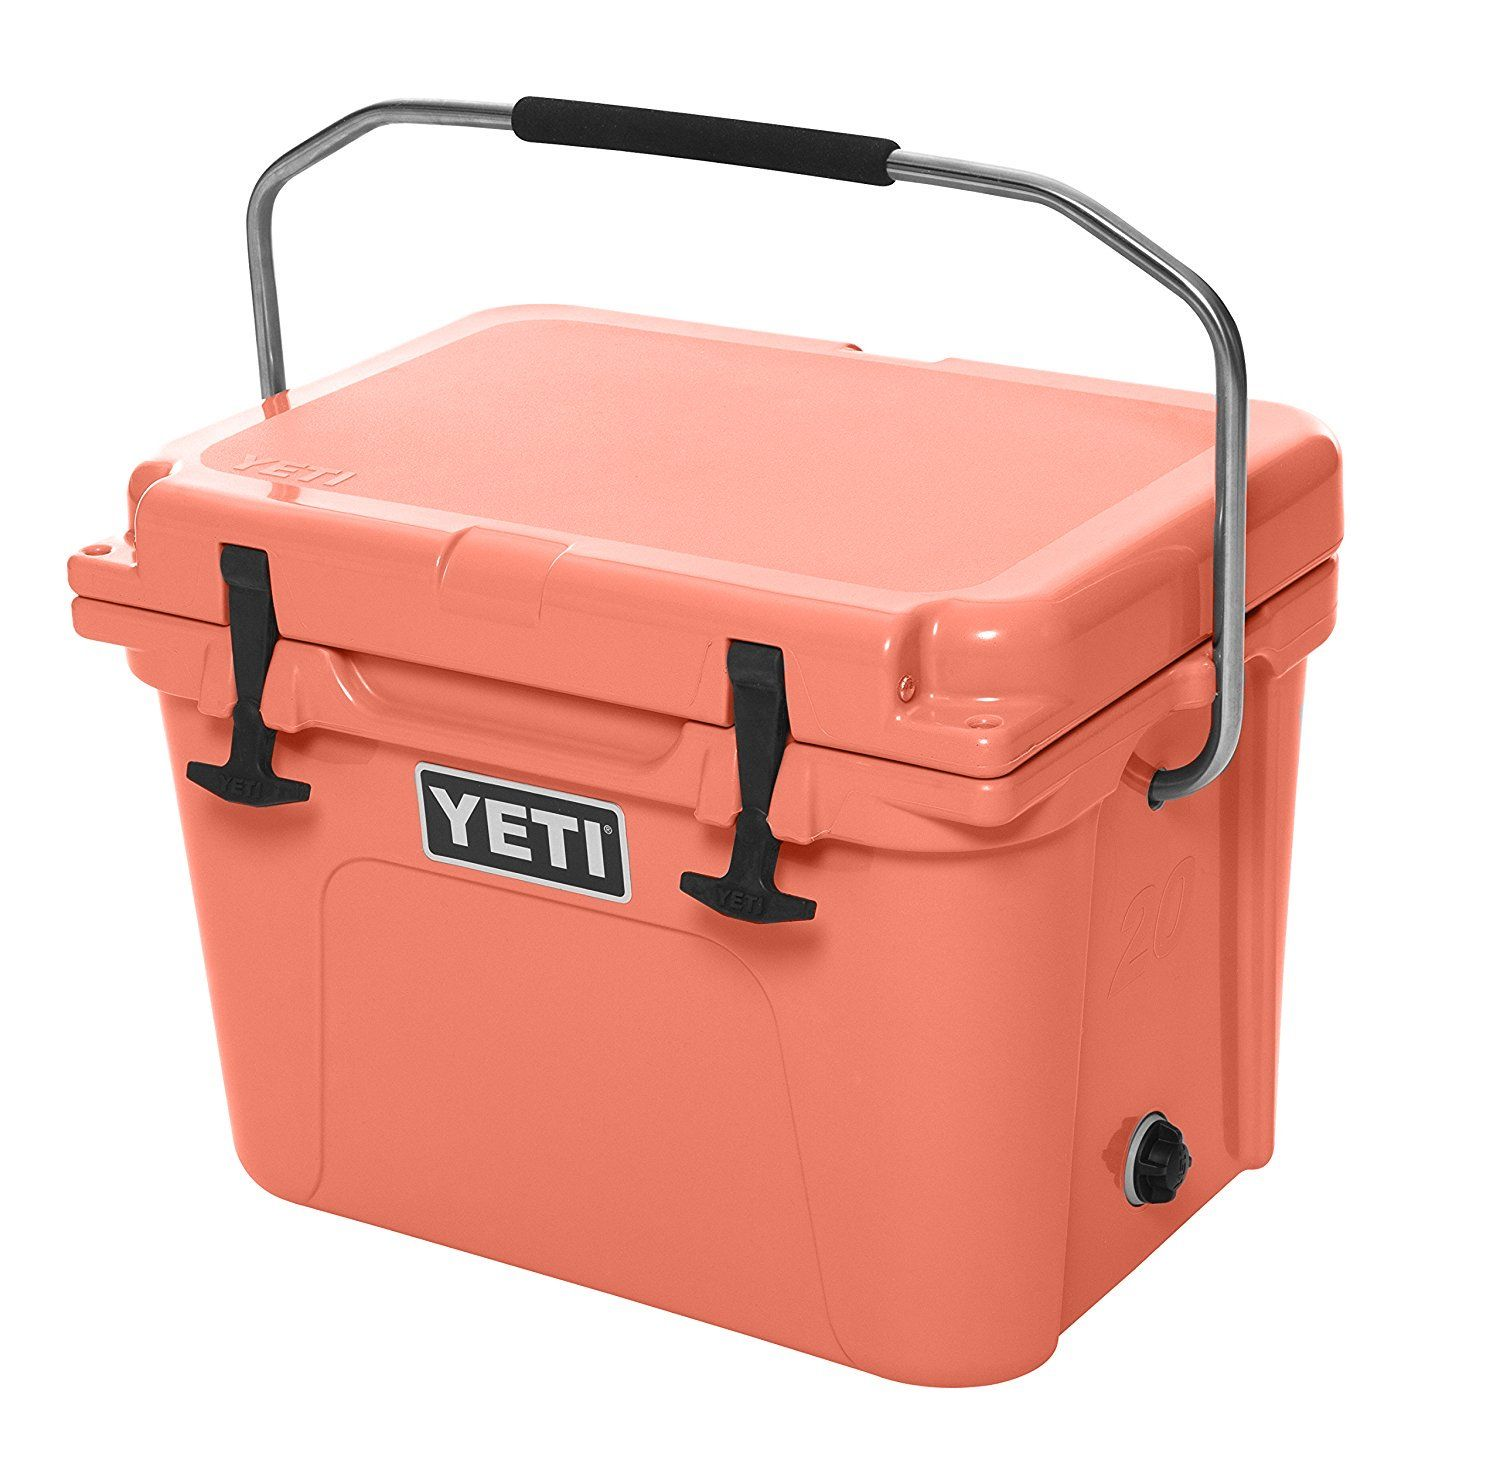 Yeti Roadie 20 Le Coral Read More Reviews Of The Product By Visiting The Link On The Image This Is An Affiliate Link Yeti Cooler Yeti Roadie Cooler